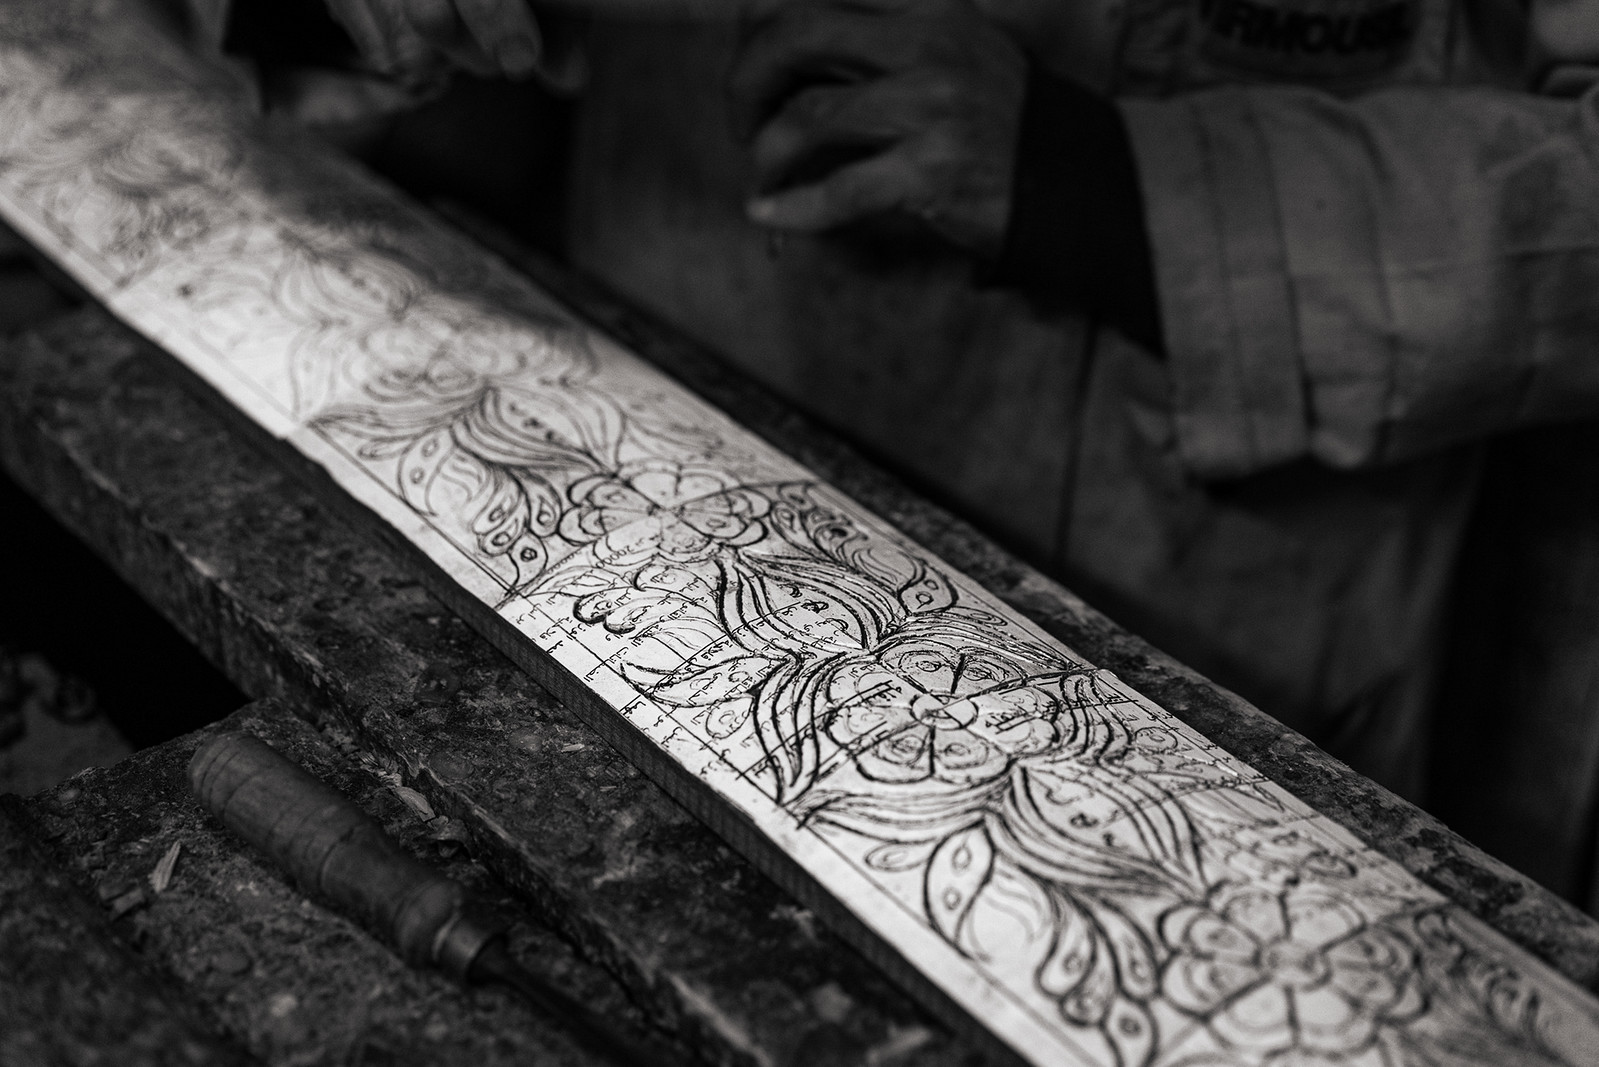 Hand Carved Mouldings from a workshop in Fes Morocco - cycling vacation and photography tour with Kevin Wenning